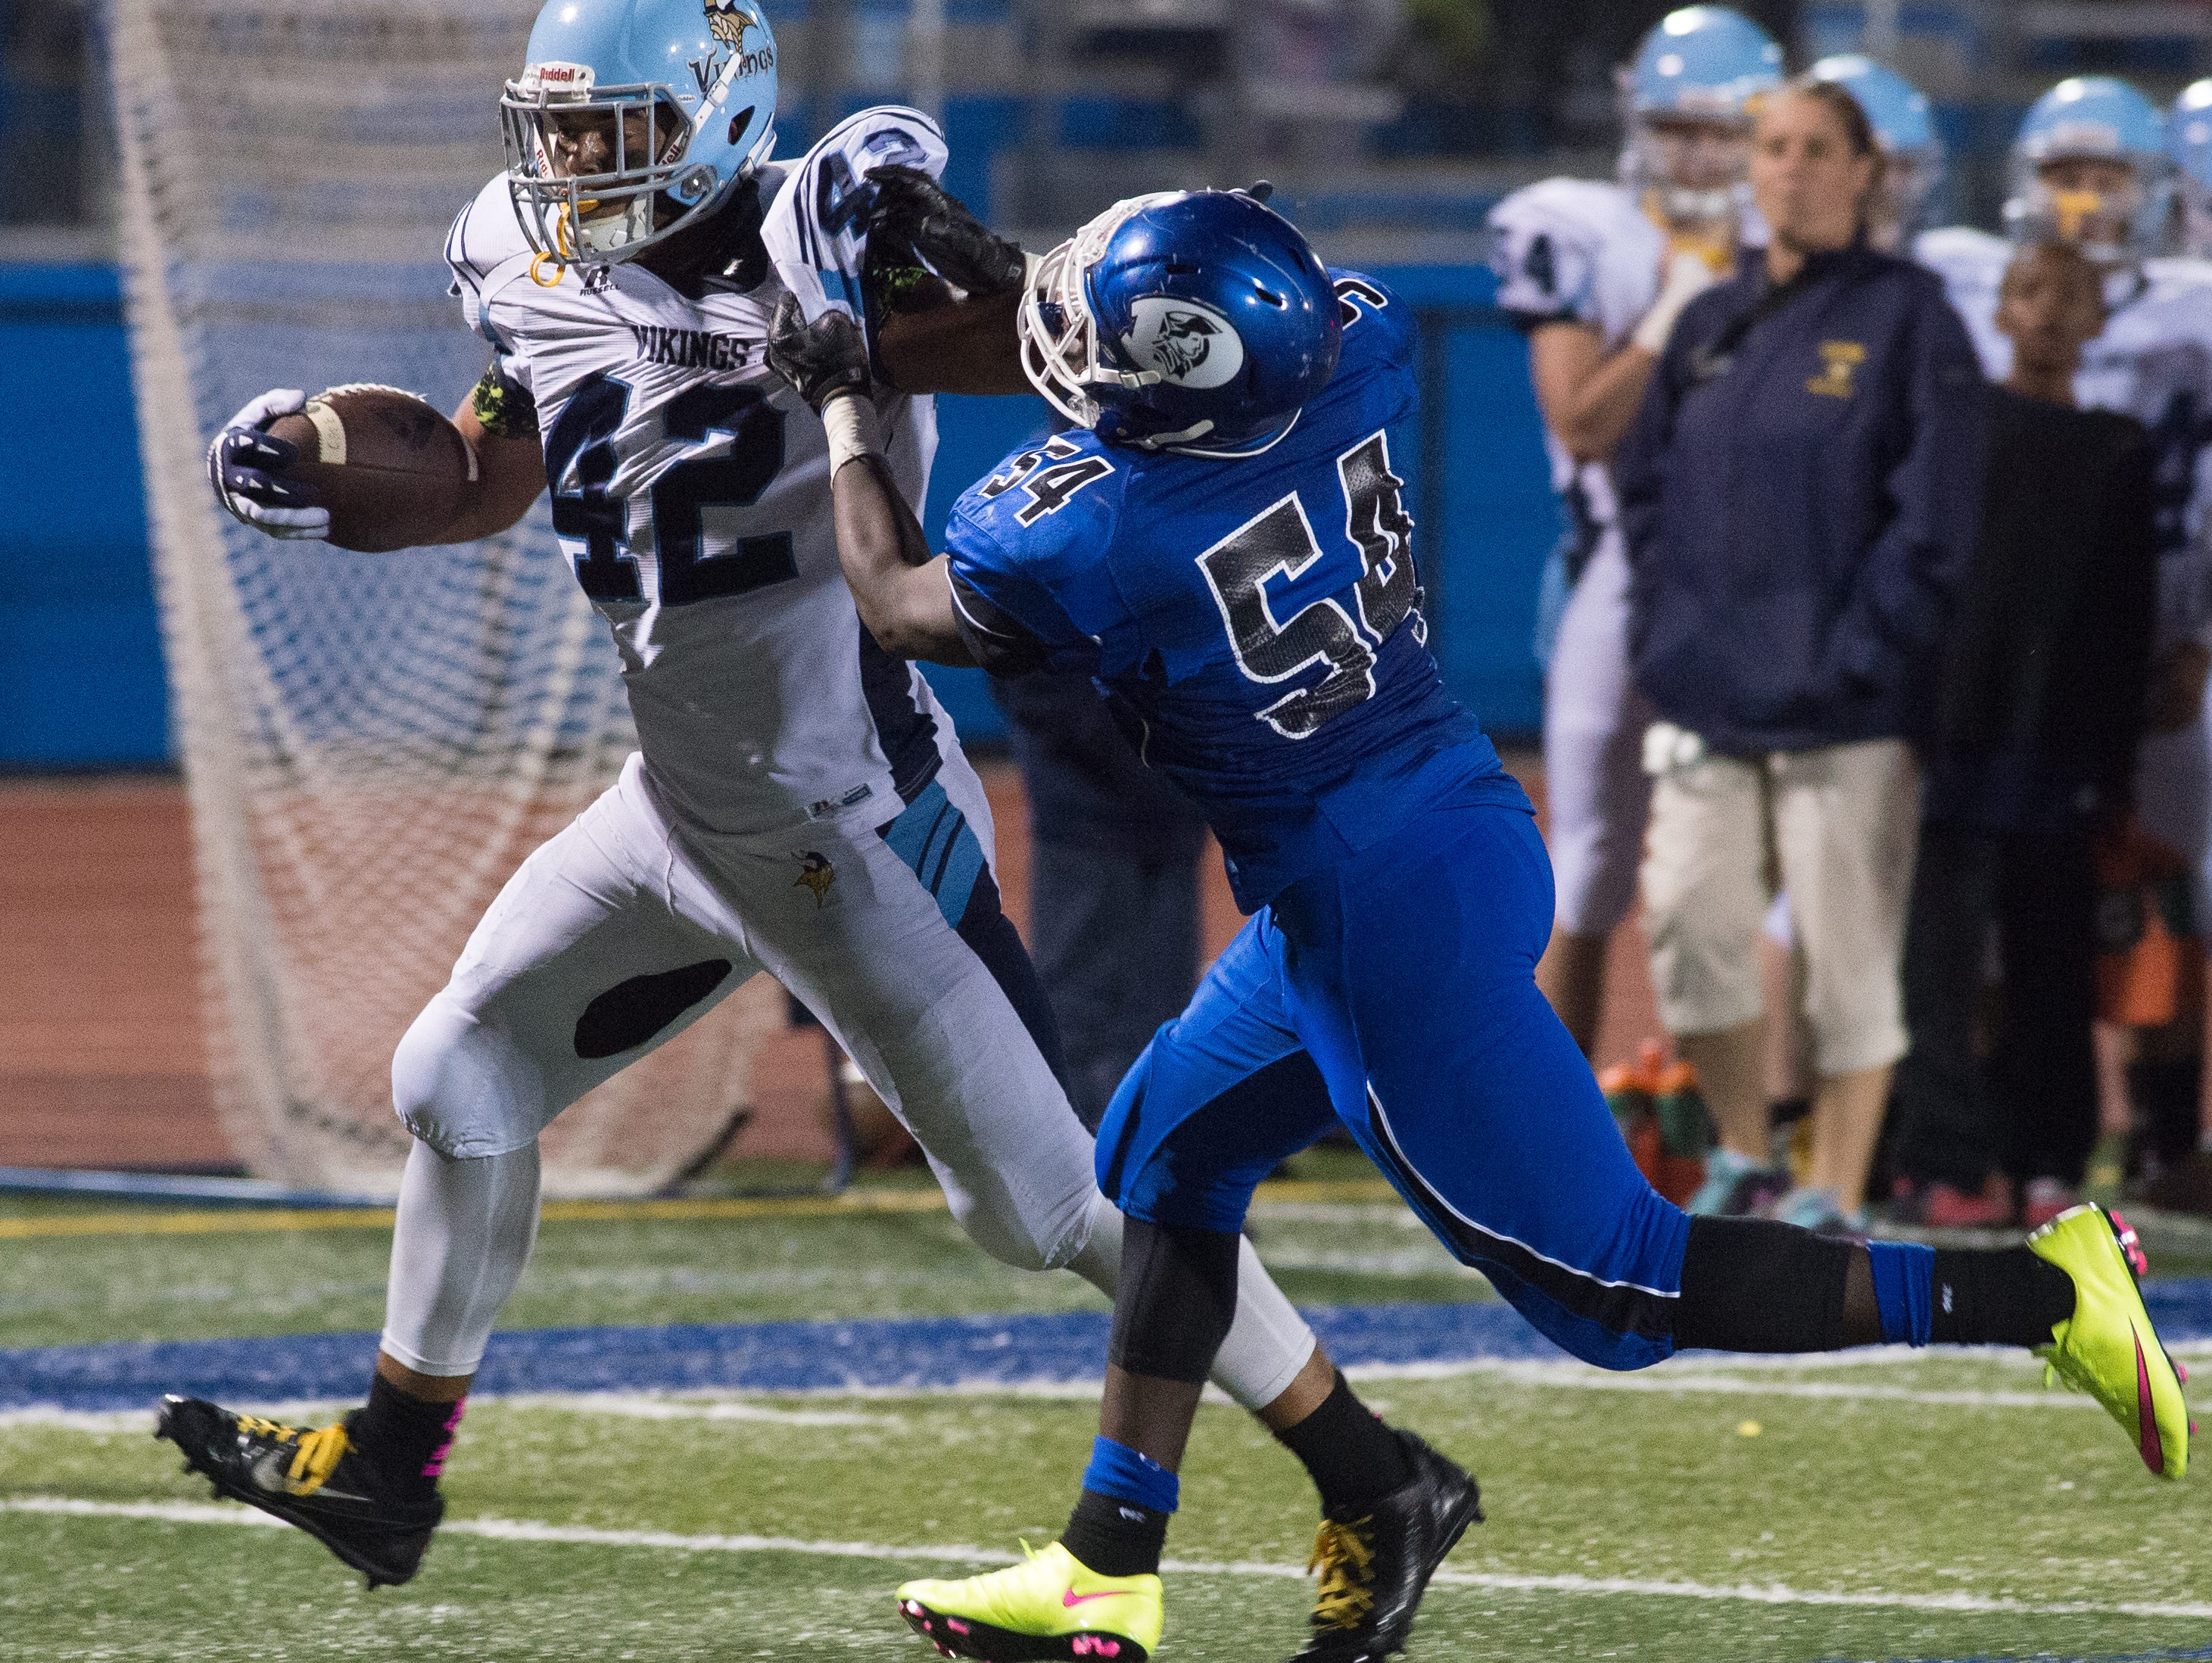 Cape Henlopen's Kolbi Wright (42) breaks a tackle attempt by Dover's Lawrence Horsey (54) in their 29-14 win over Dover.